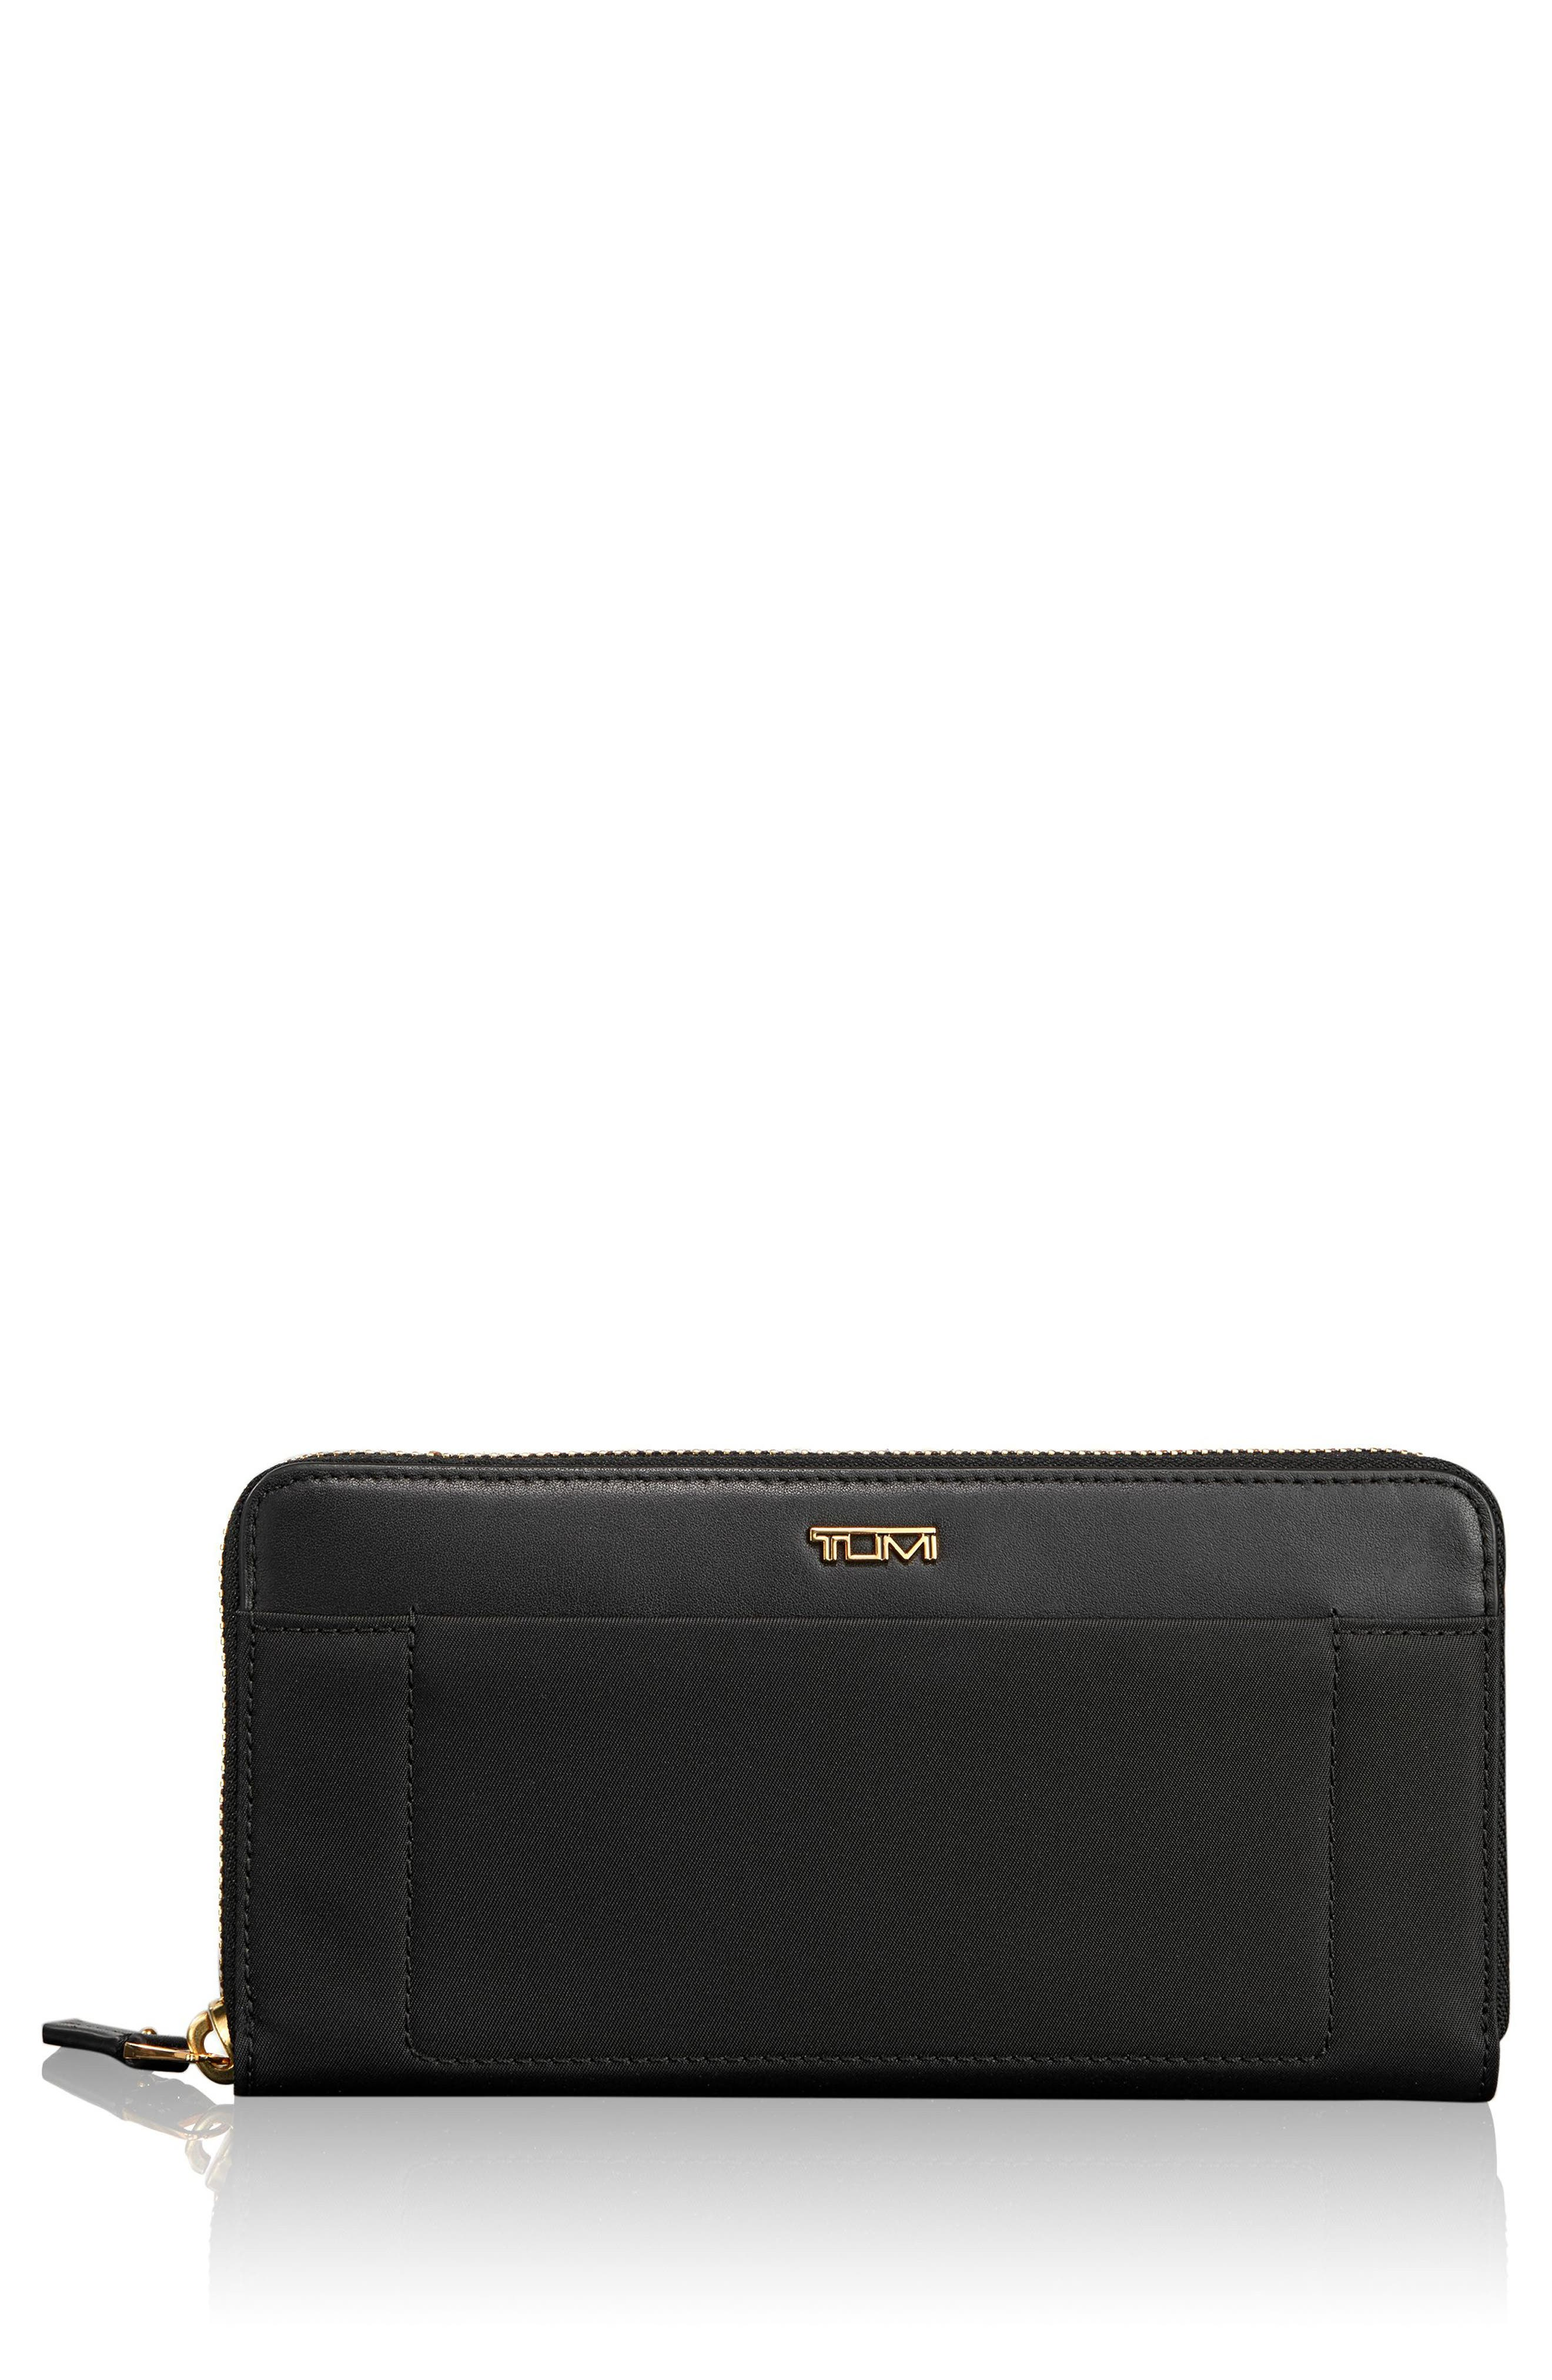 Tumi Continental Zip Tech Wallet